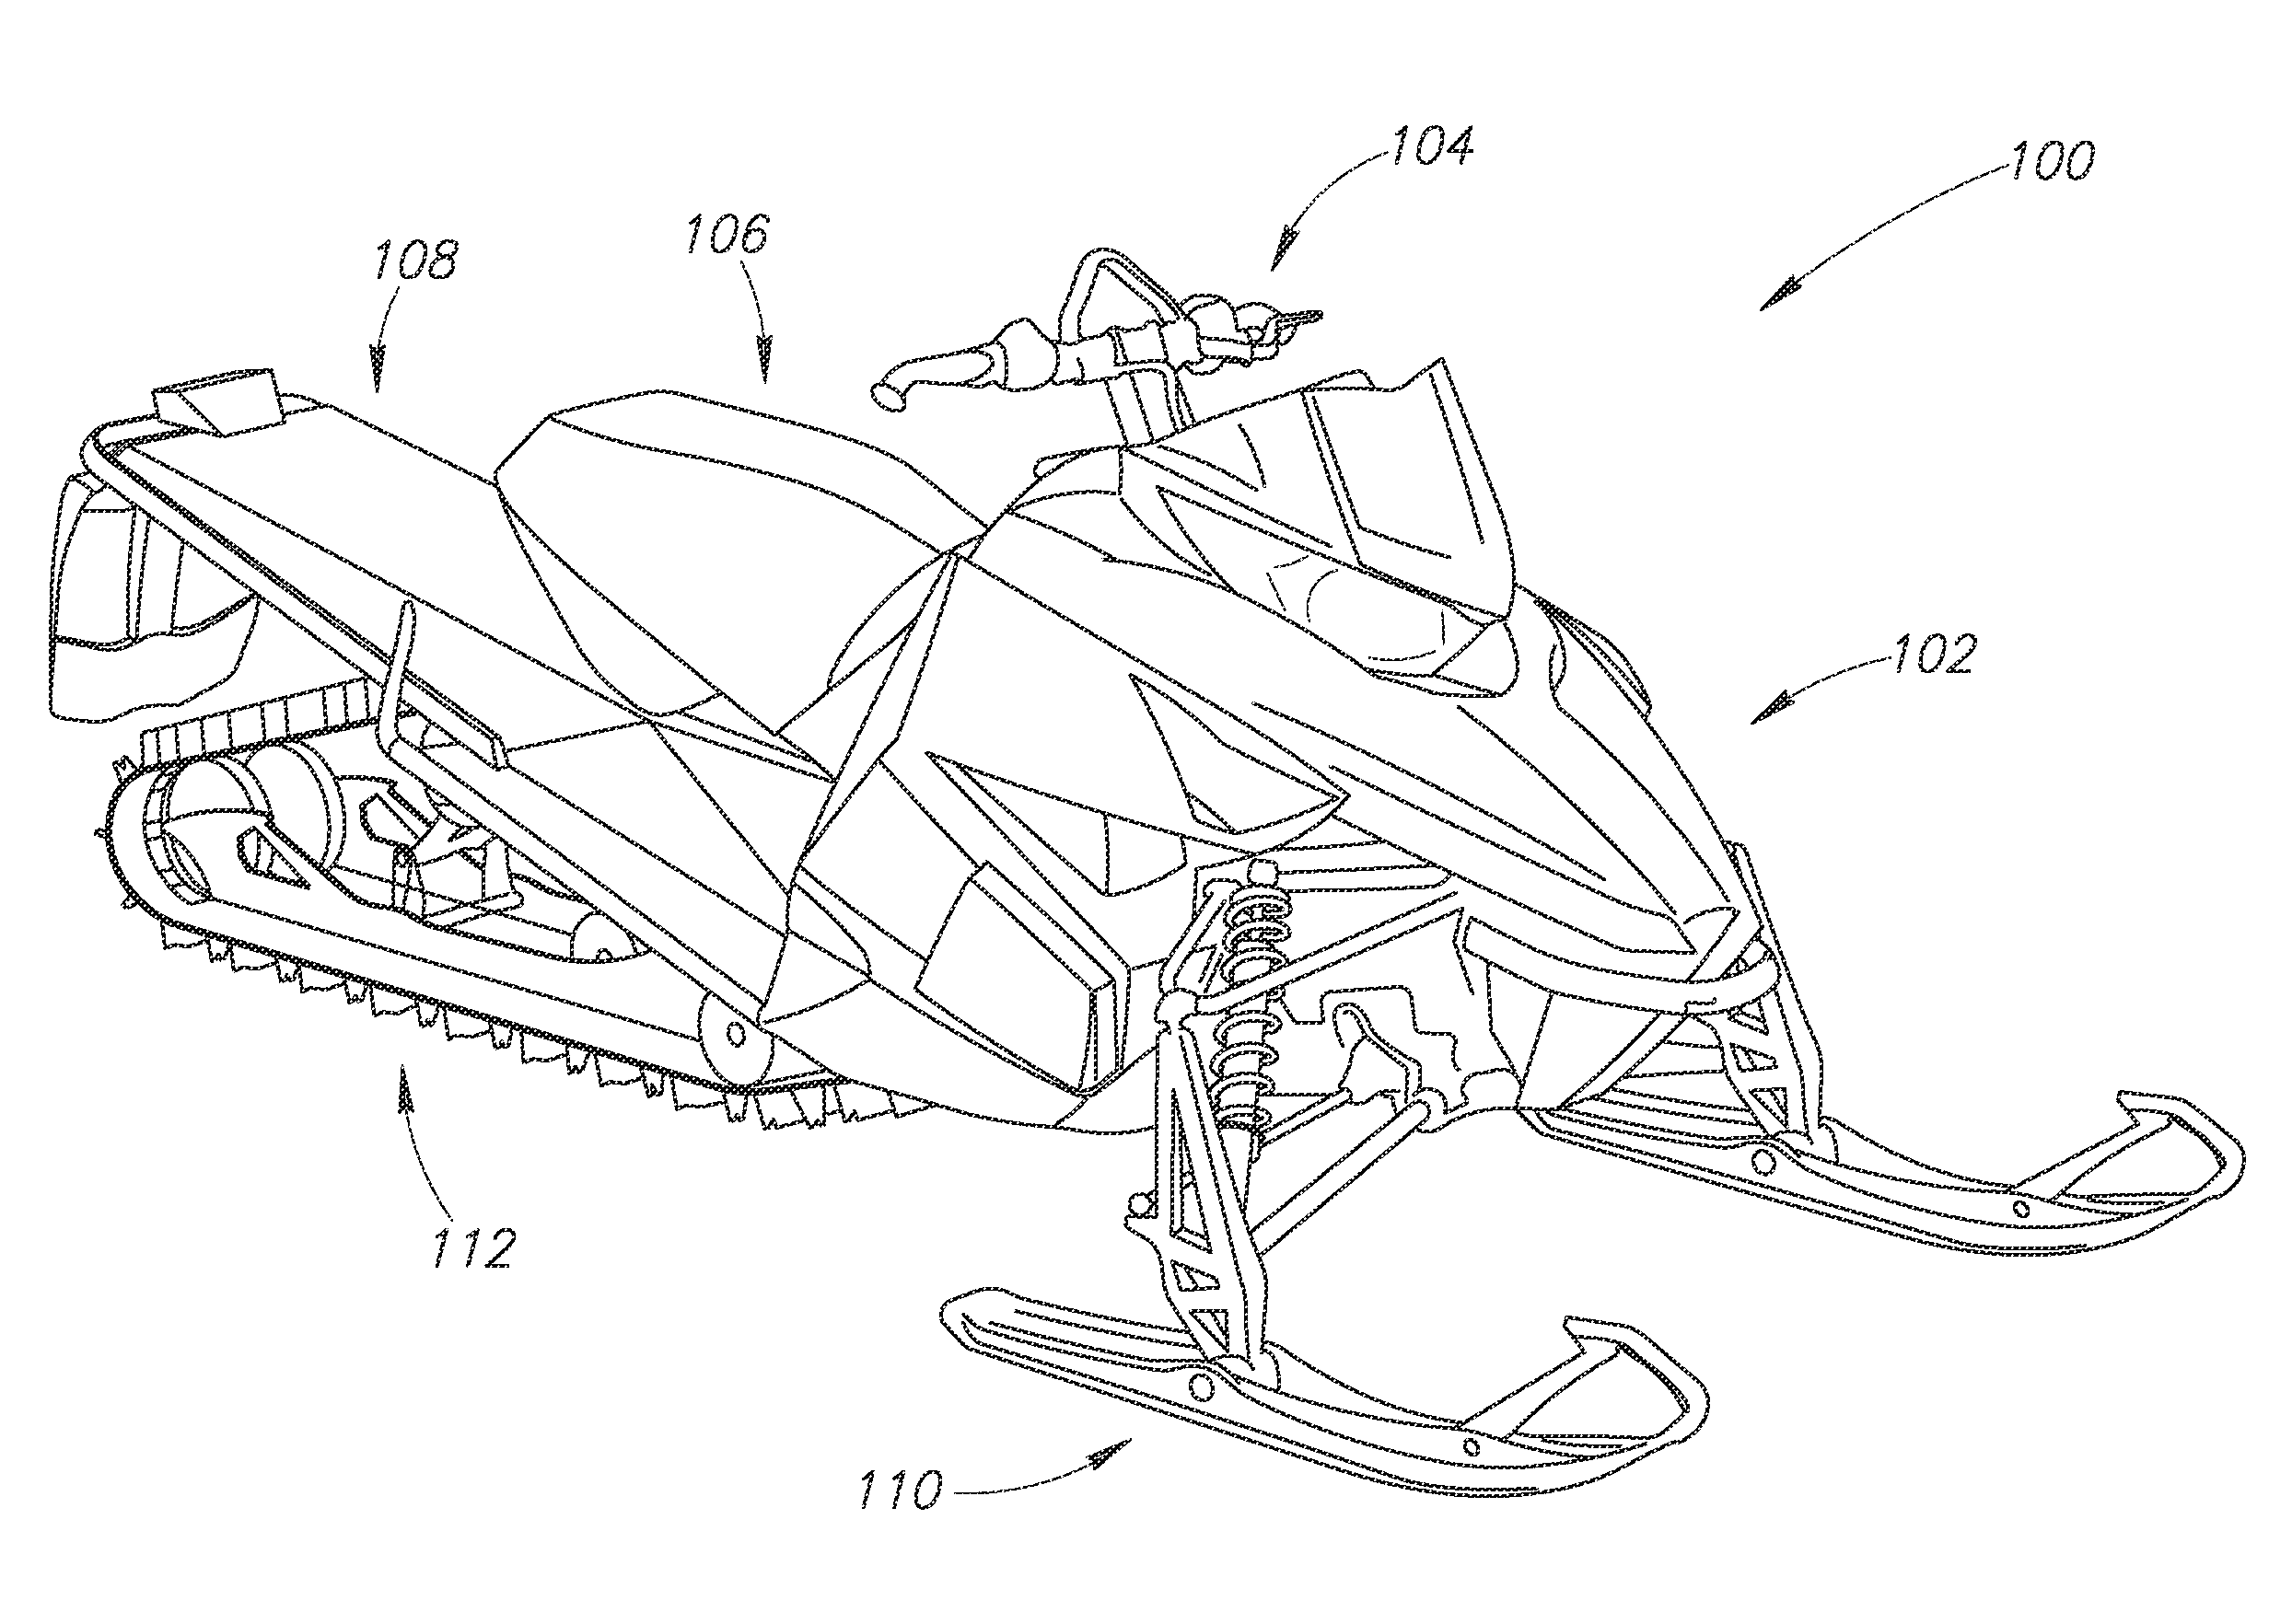 snowmobile coloring pages - photo#25